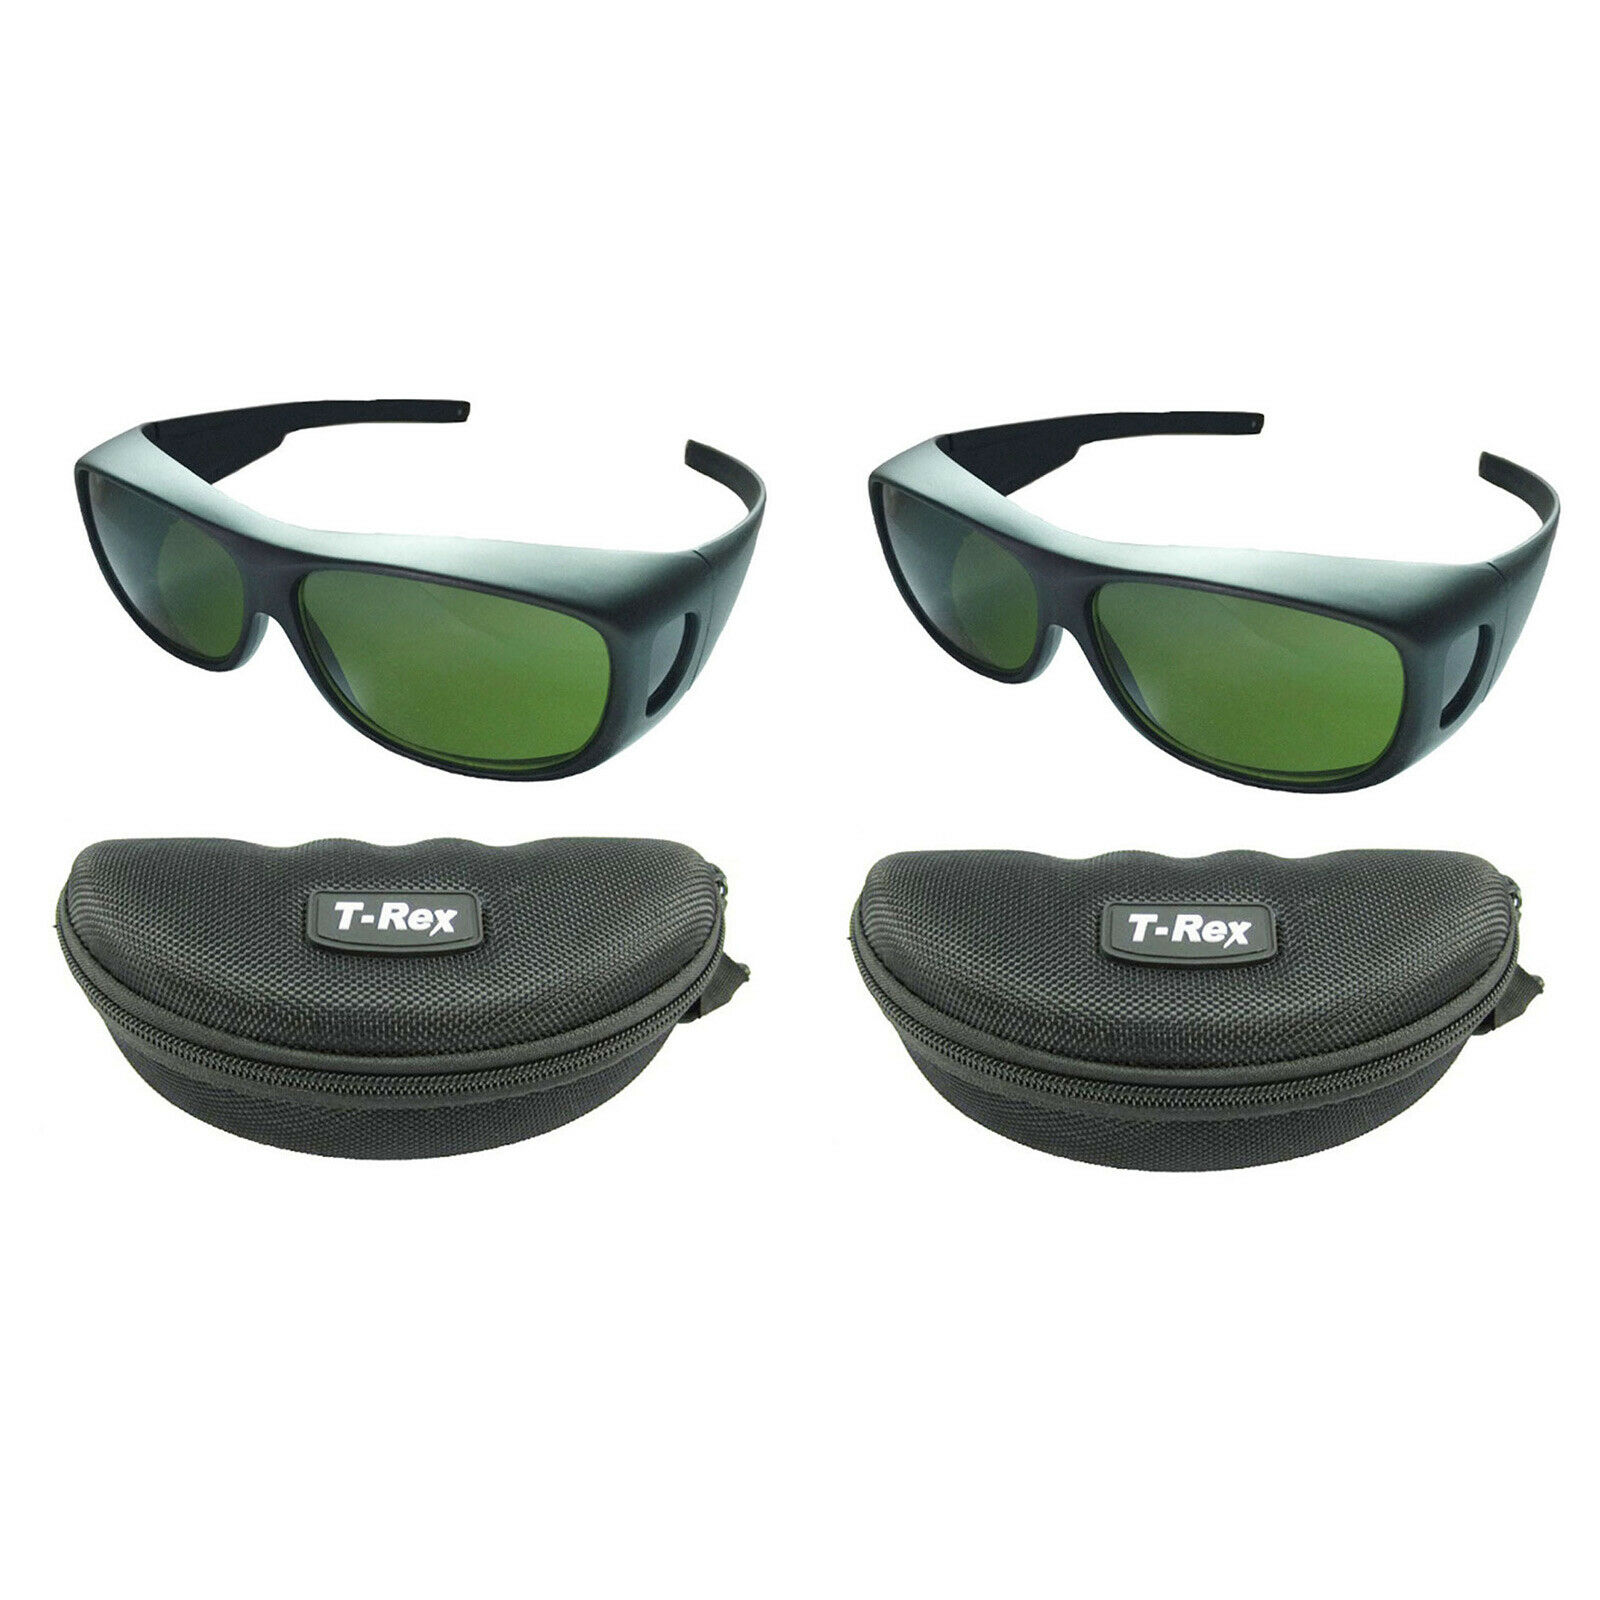 2pcs IPL CE 200nm-2000nm Laser Protection Safety Goggles Glasses OD5+ CE UV400